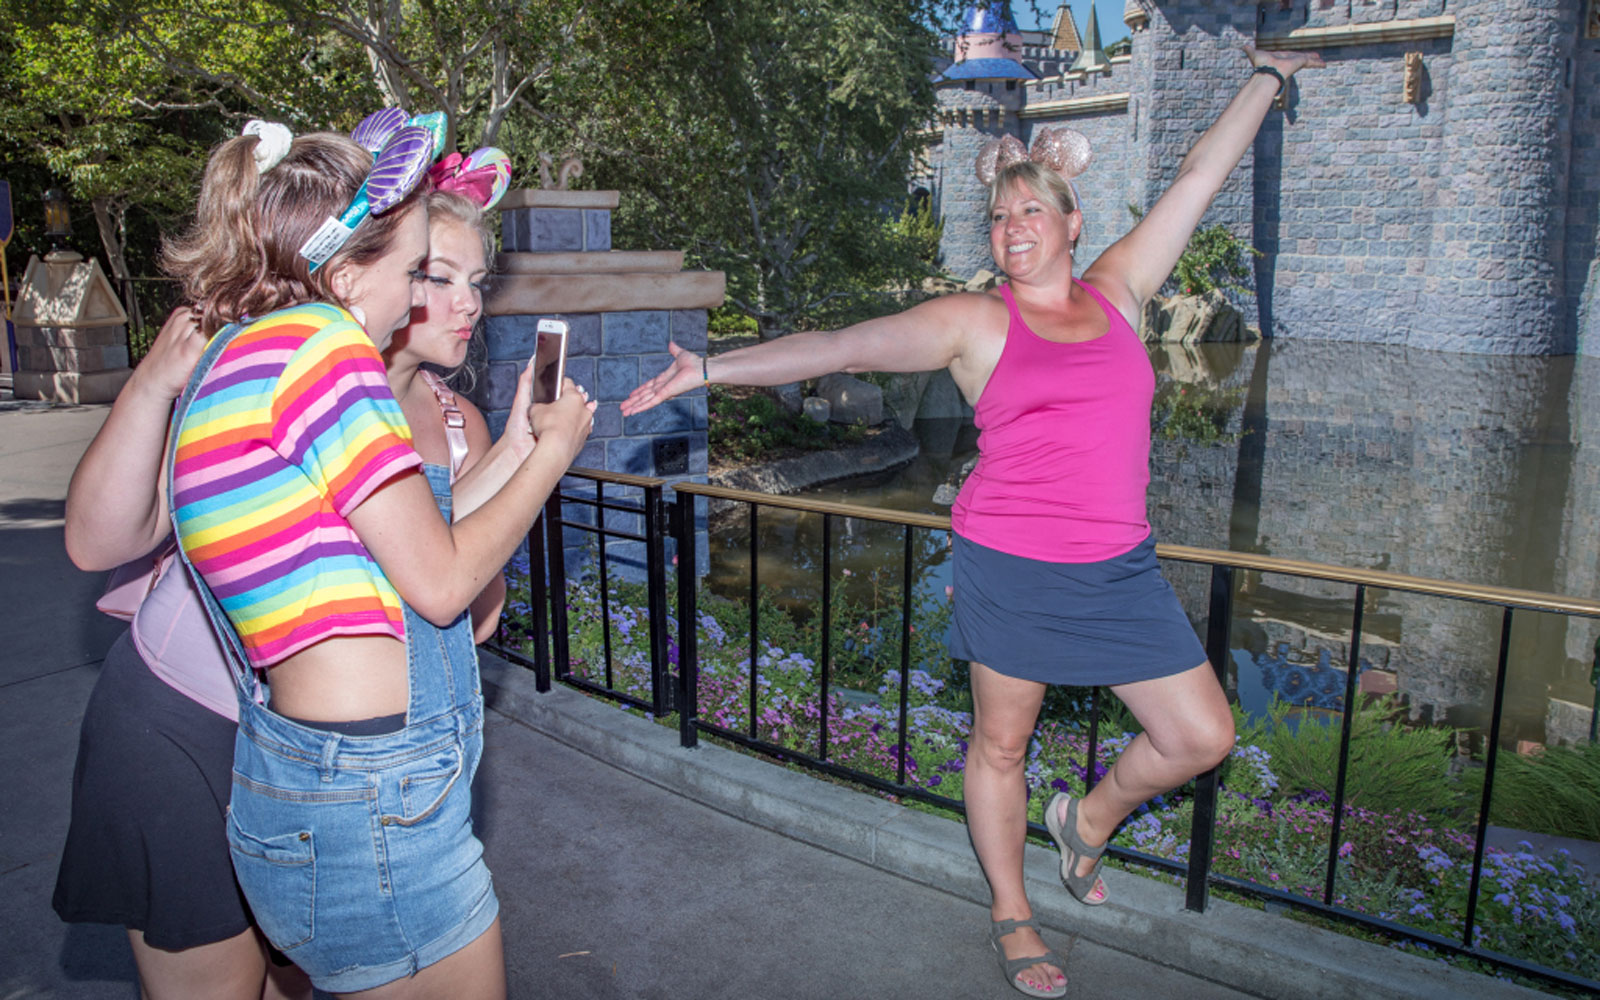 Woman Who Won Free Disneyland Pass in 1985 Finally Uses it Decades Later